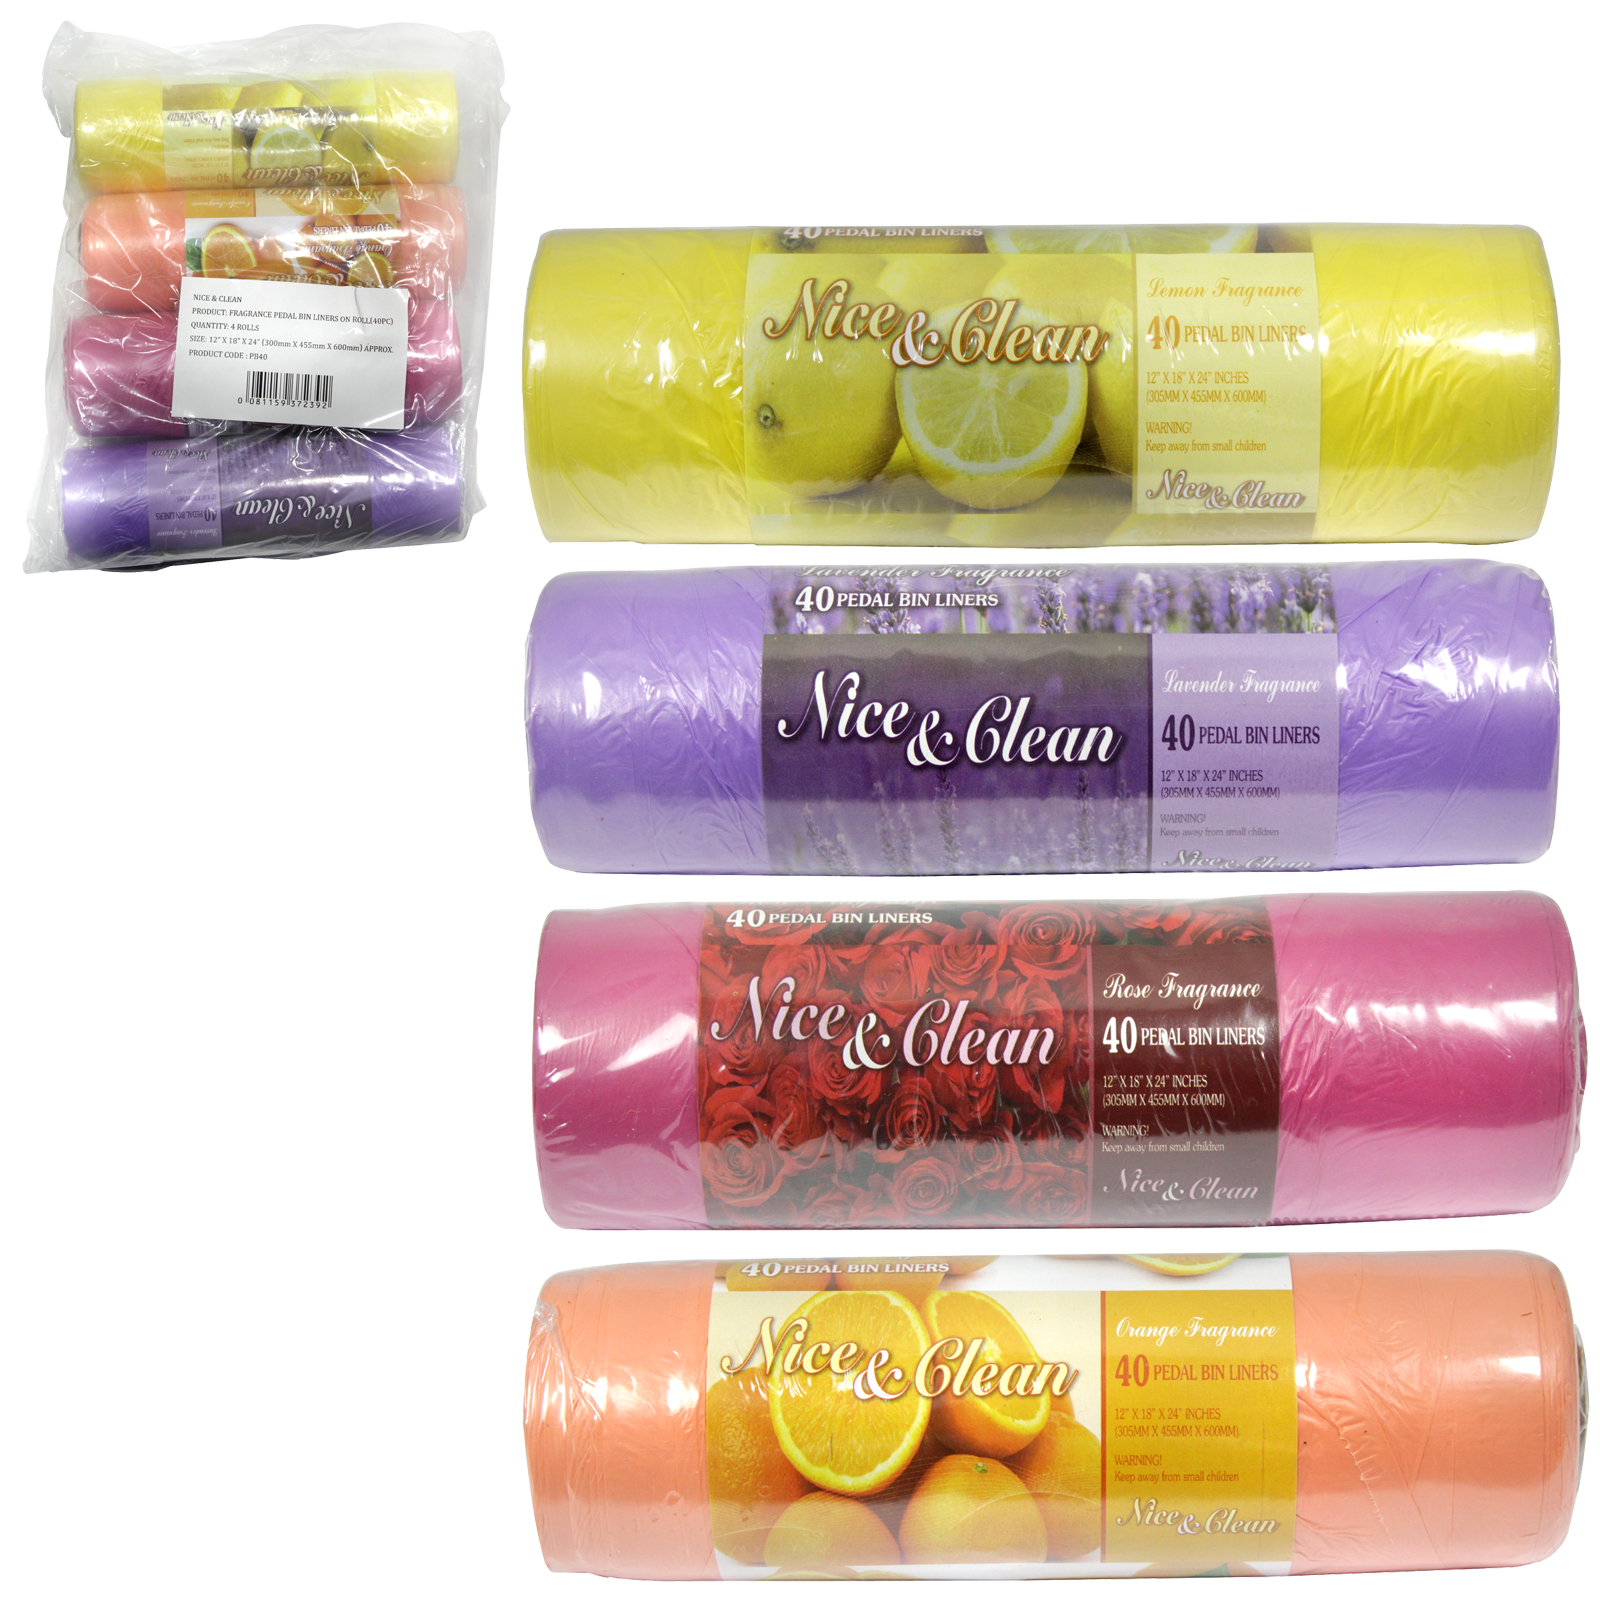 NICE+CLN 40 SCENTED PEDAL BIN LINERS X4